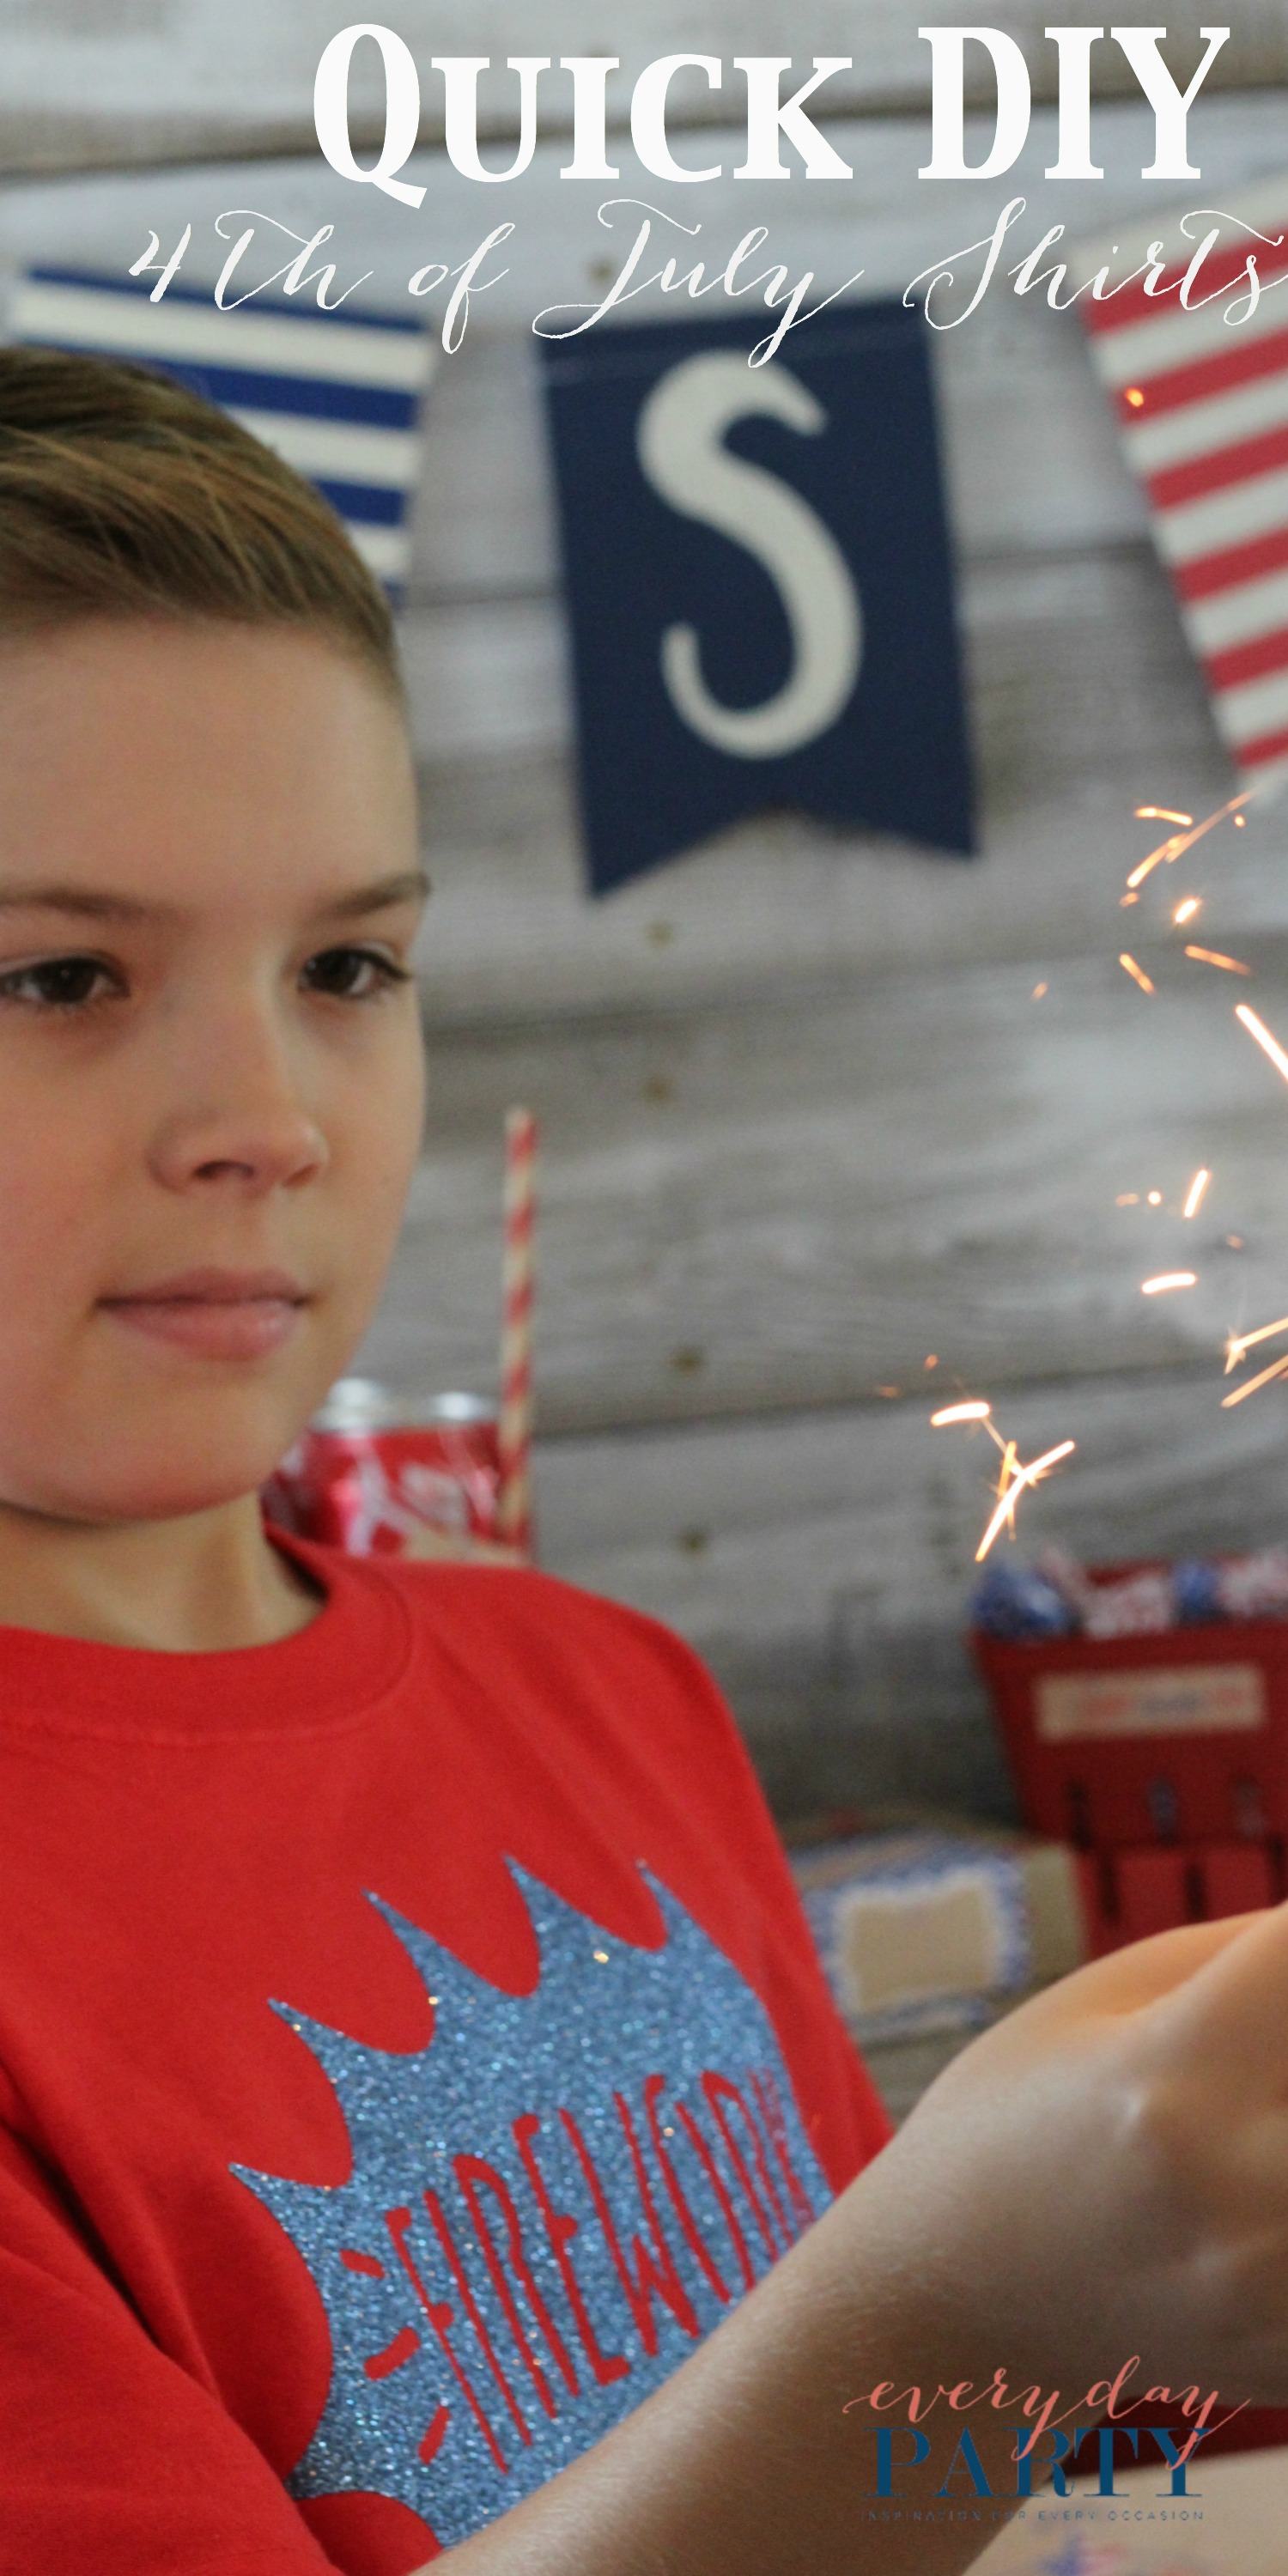 Everyday Party Magazine Quick DIY 4th of July Shirts